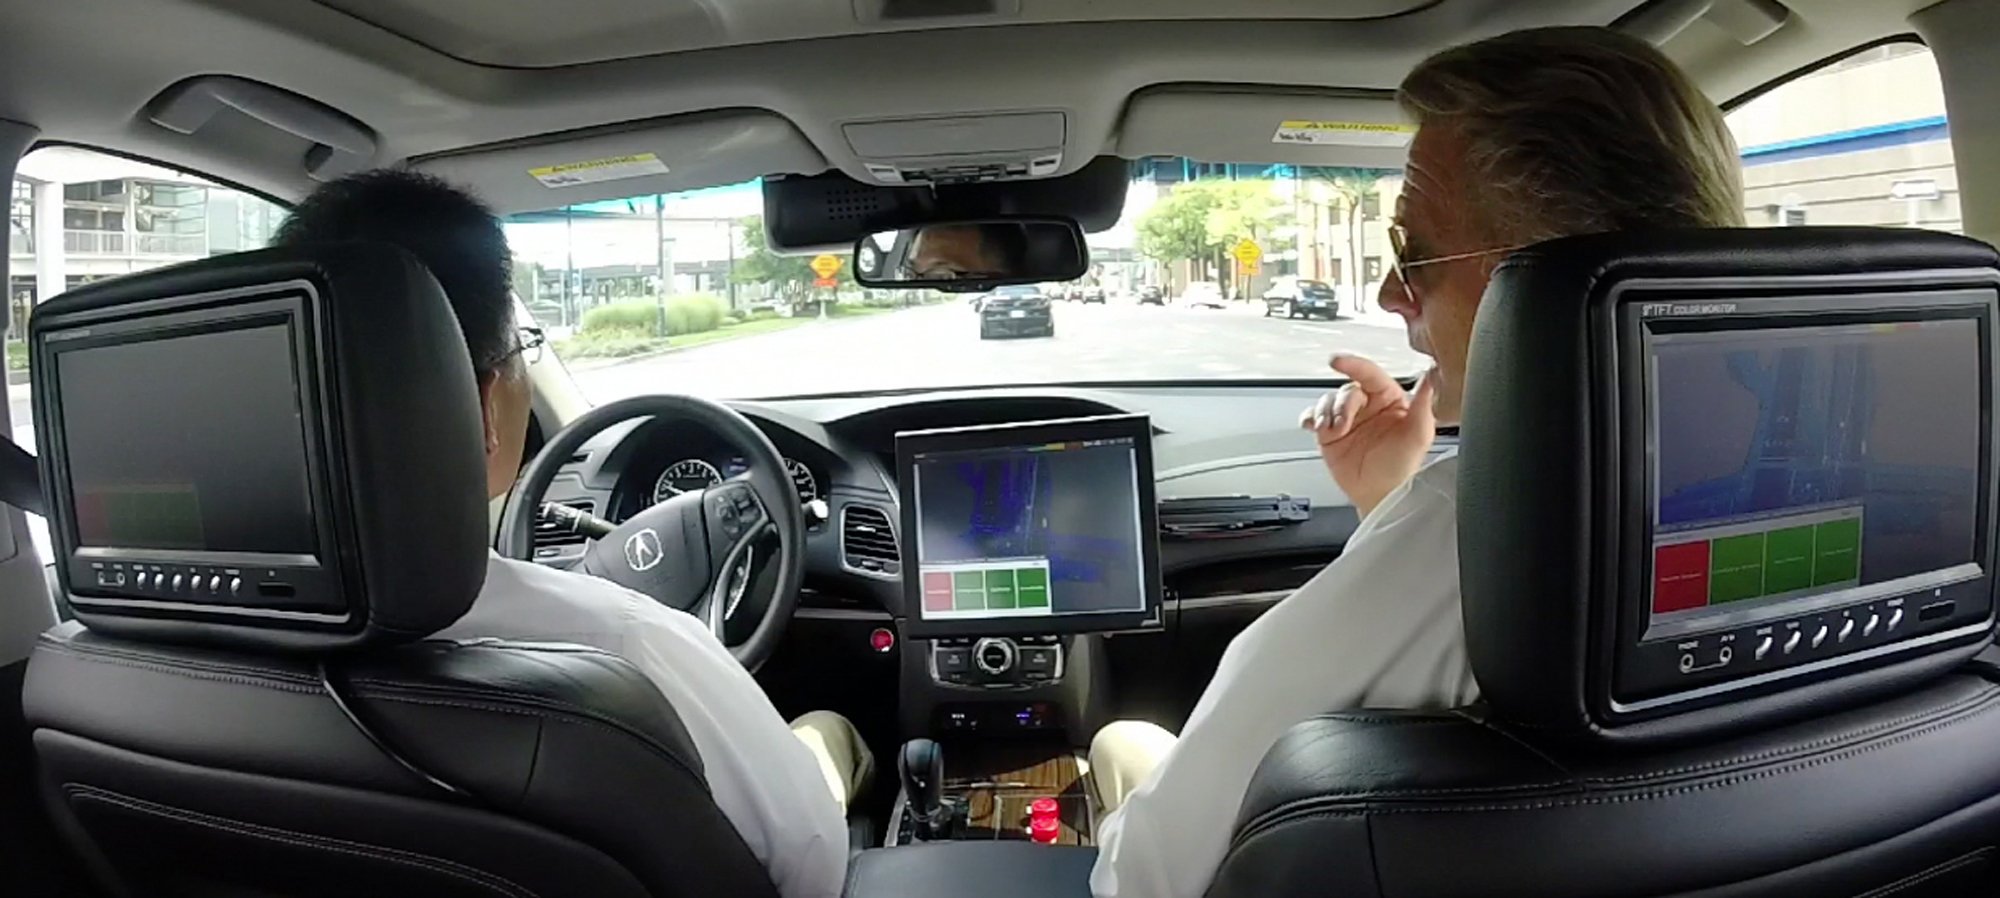 Peter Carey Right Talks During A Driving Demonstration In Prototype Acura Rlx Sedan